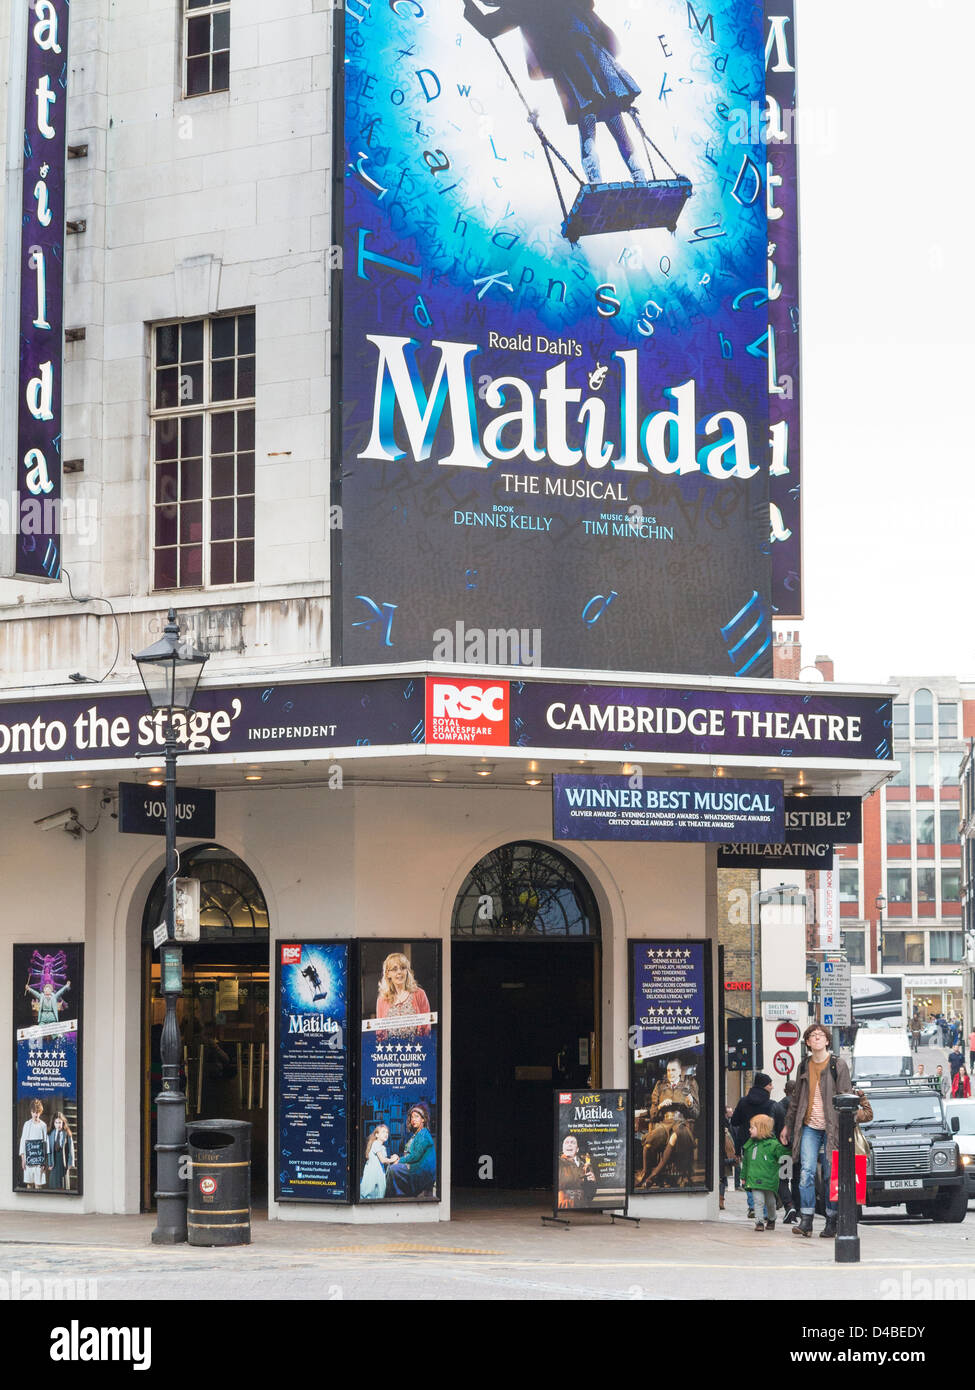 Cambridge Theatre with signs for the musical Matilda in London, England - Stock Image